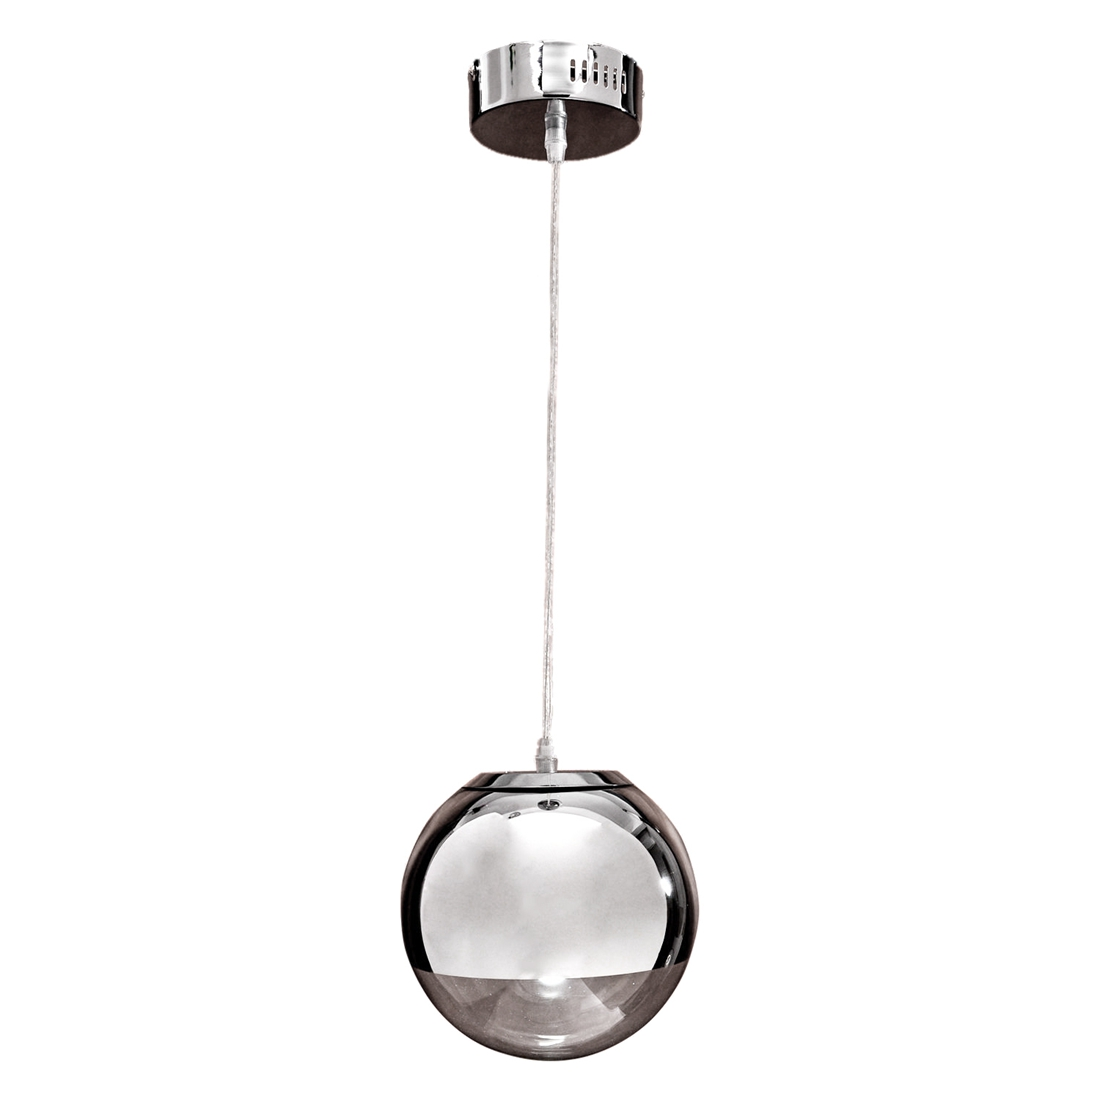 Pendant Chandelier Ceiling Globe Lamp Light Bulb Metal Body Chrome<br>